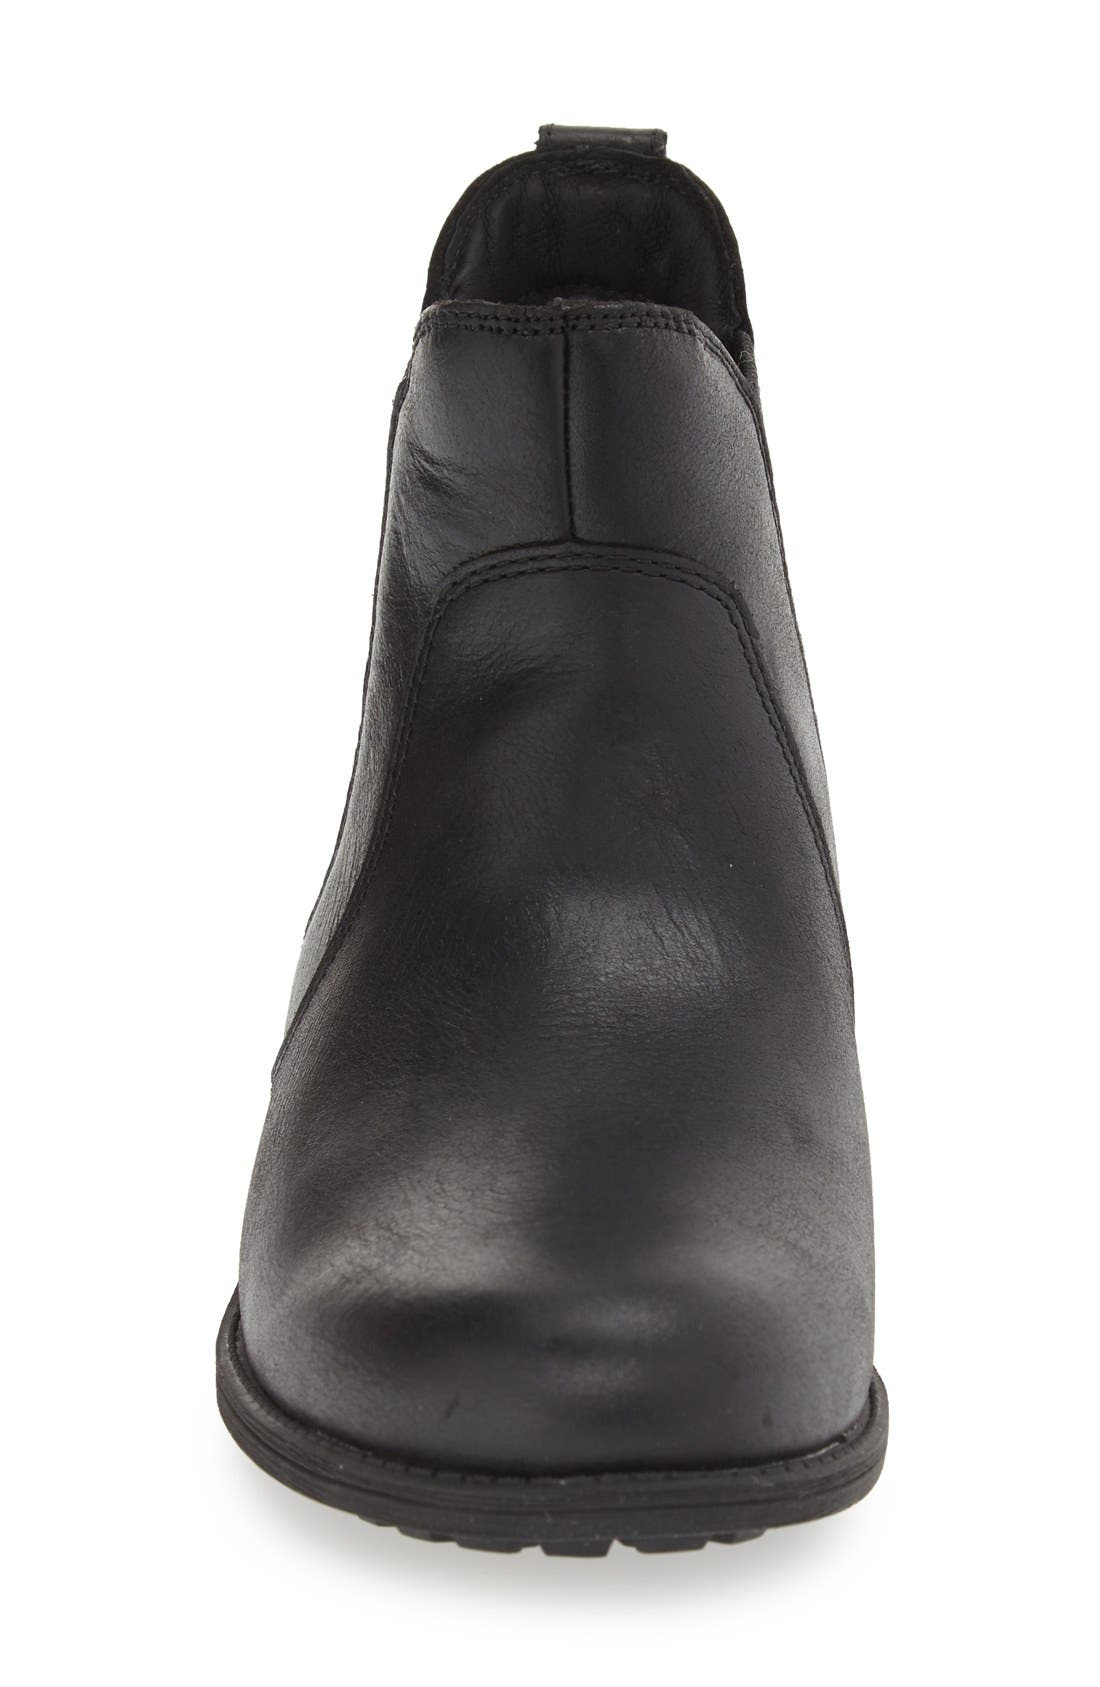 Bonham Chelsea Boot,                             Alternate thumbnail 3, color,                             001